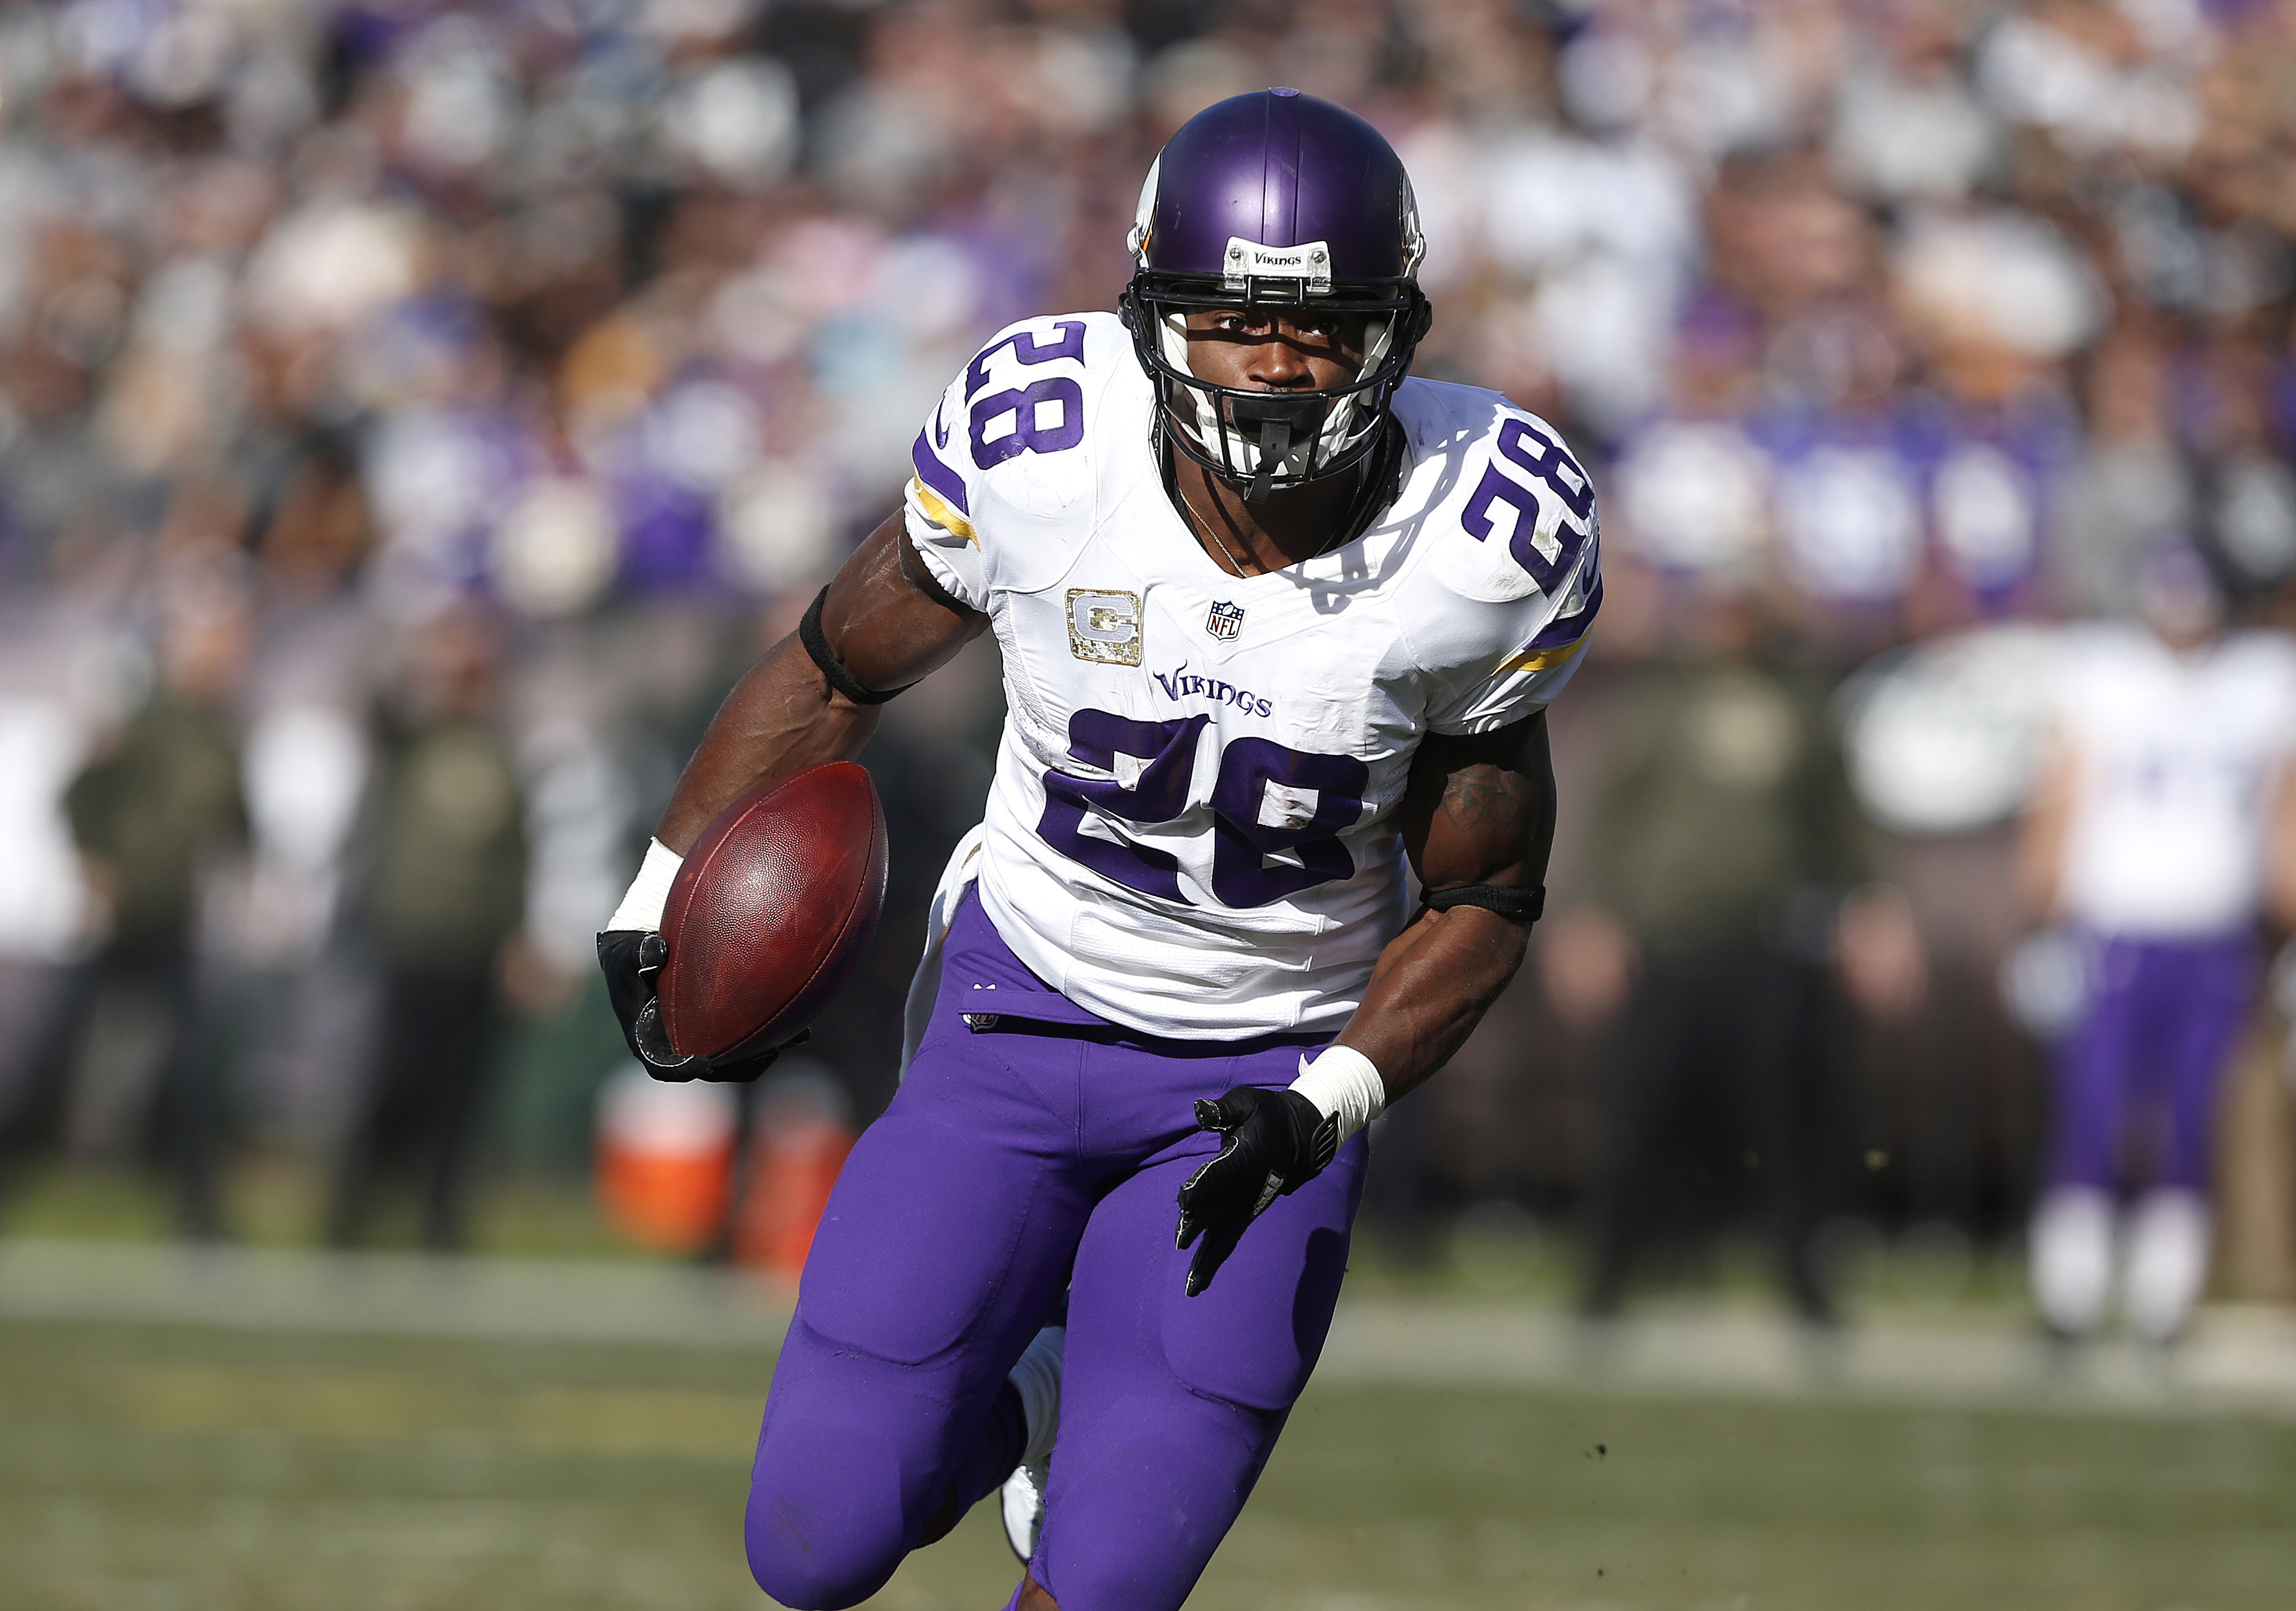 FILE - In this Sunday, Nov. 15, 2015 file photo, Minnesota Vikings running back Adrian Peterson (28) runs against the Oakland Raiders during an NFL football game in Oakland, Calif. The Packers need to get production in the running game to ease the pressur